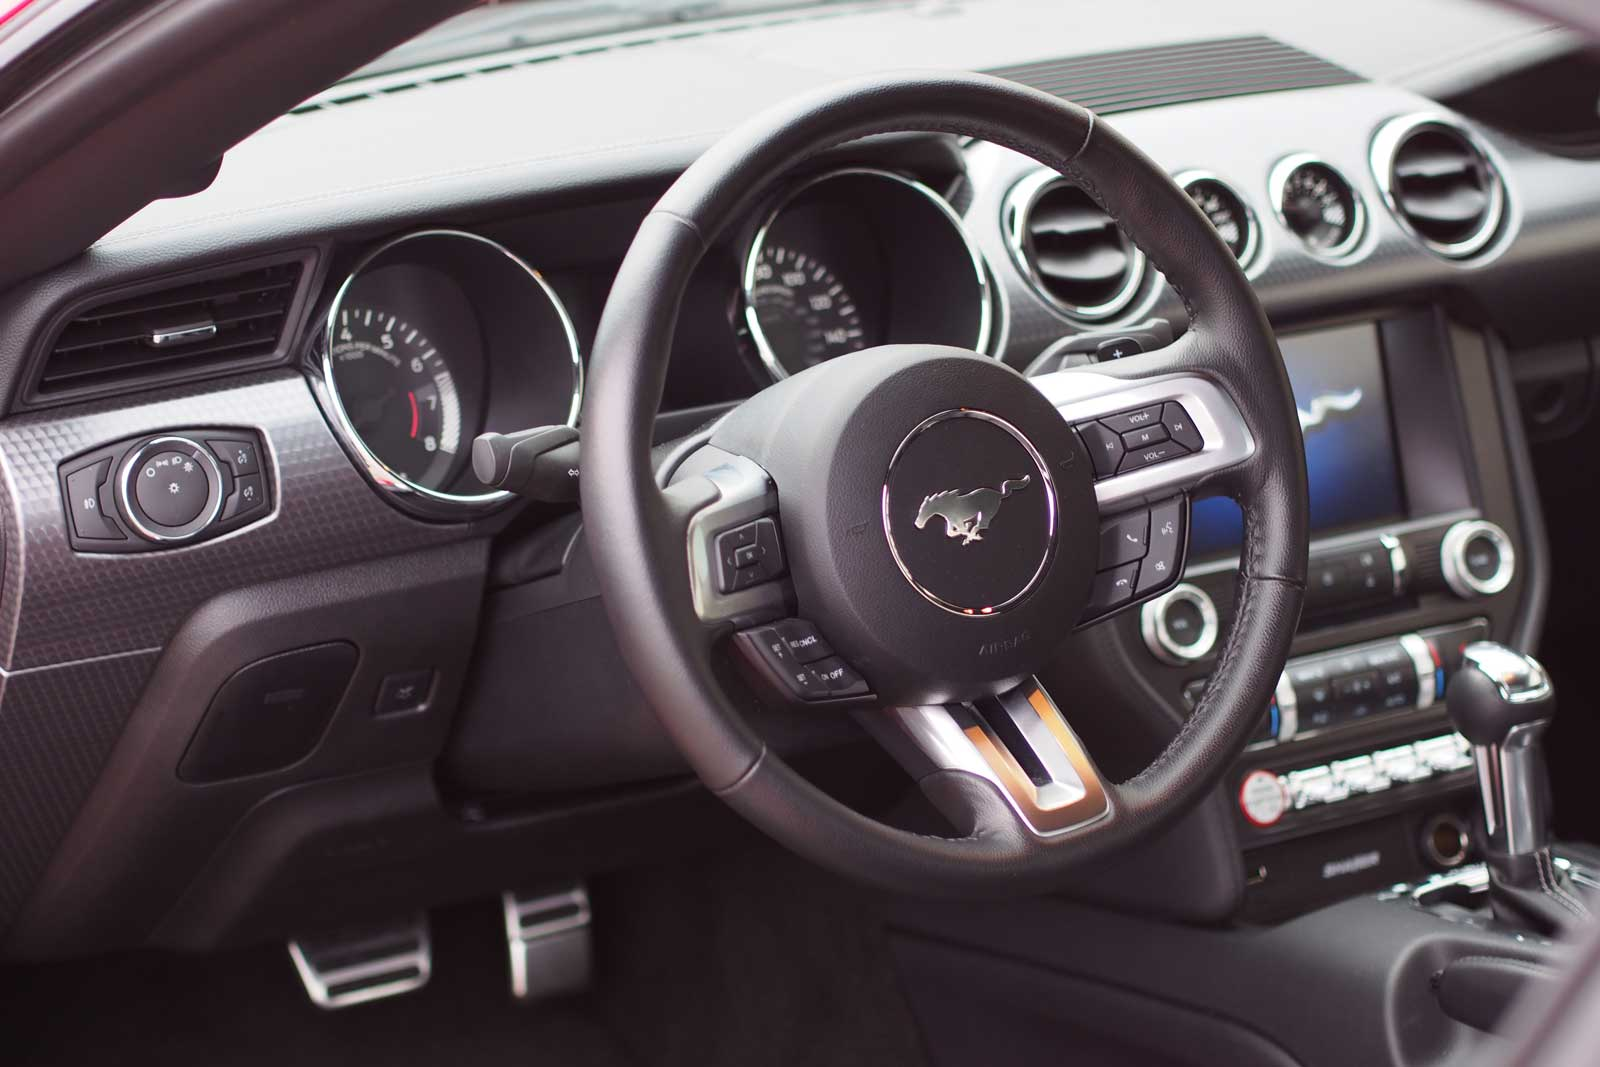 2016 Ford Mustang Ecoboost Interior 01